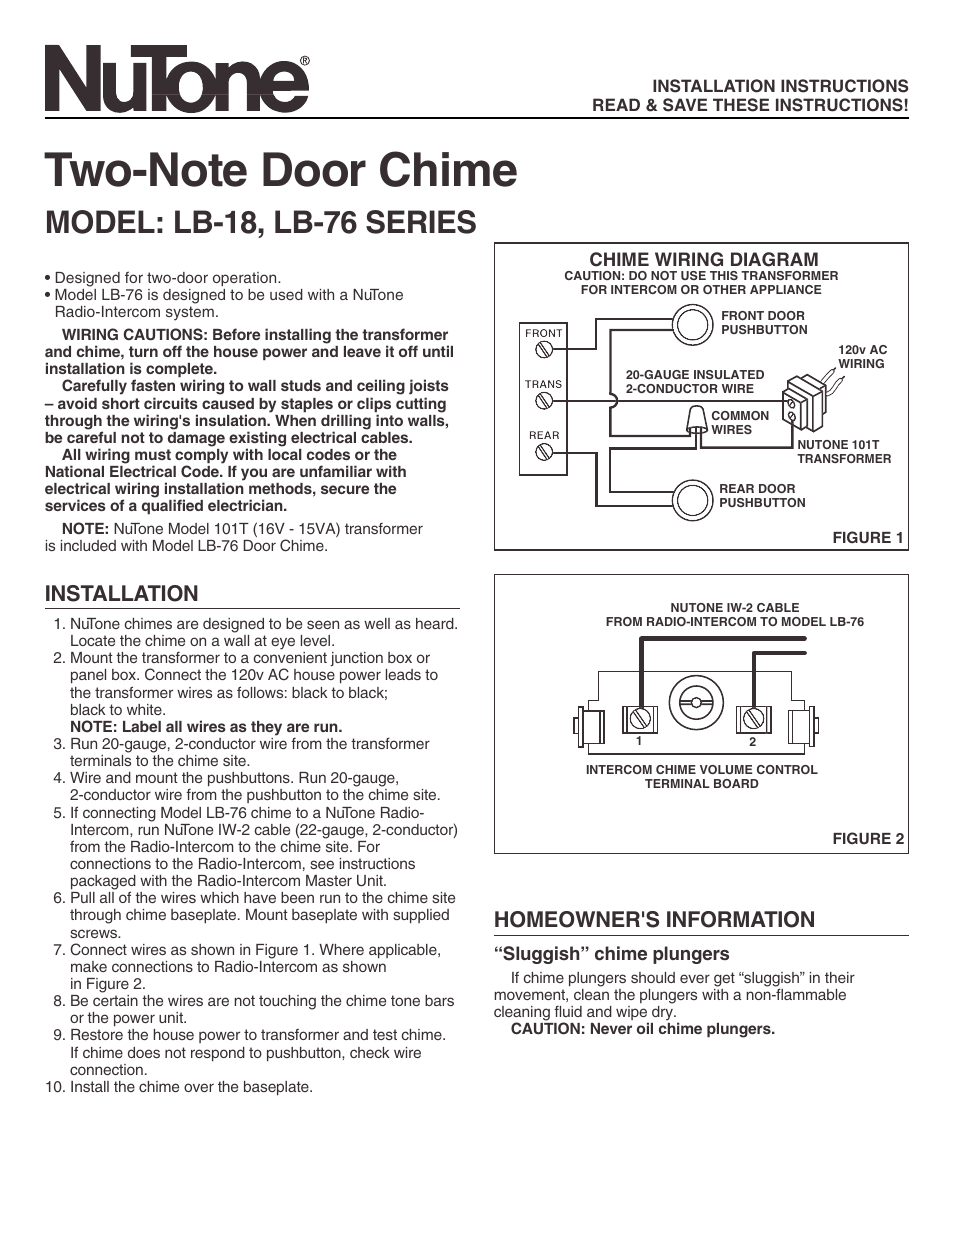 nutone two note door chime lb 76 page1?resize\\\\\\\\\\\\\\\\\\\\\\\\\\\\\\\=665%2C861 friedland type 4 nom ance wiring diagram friedland d107 wiring  at virtualis.co